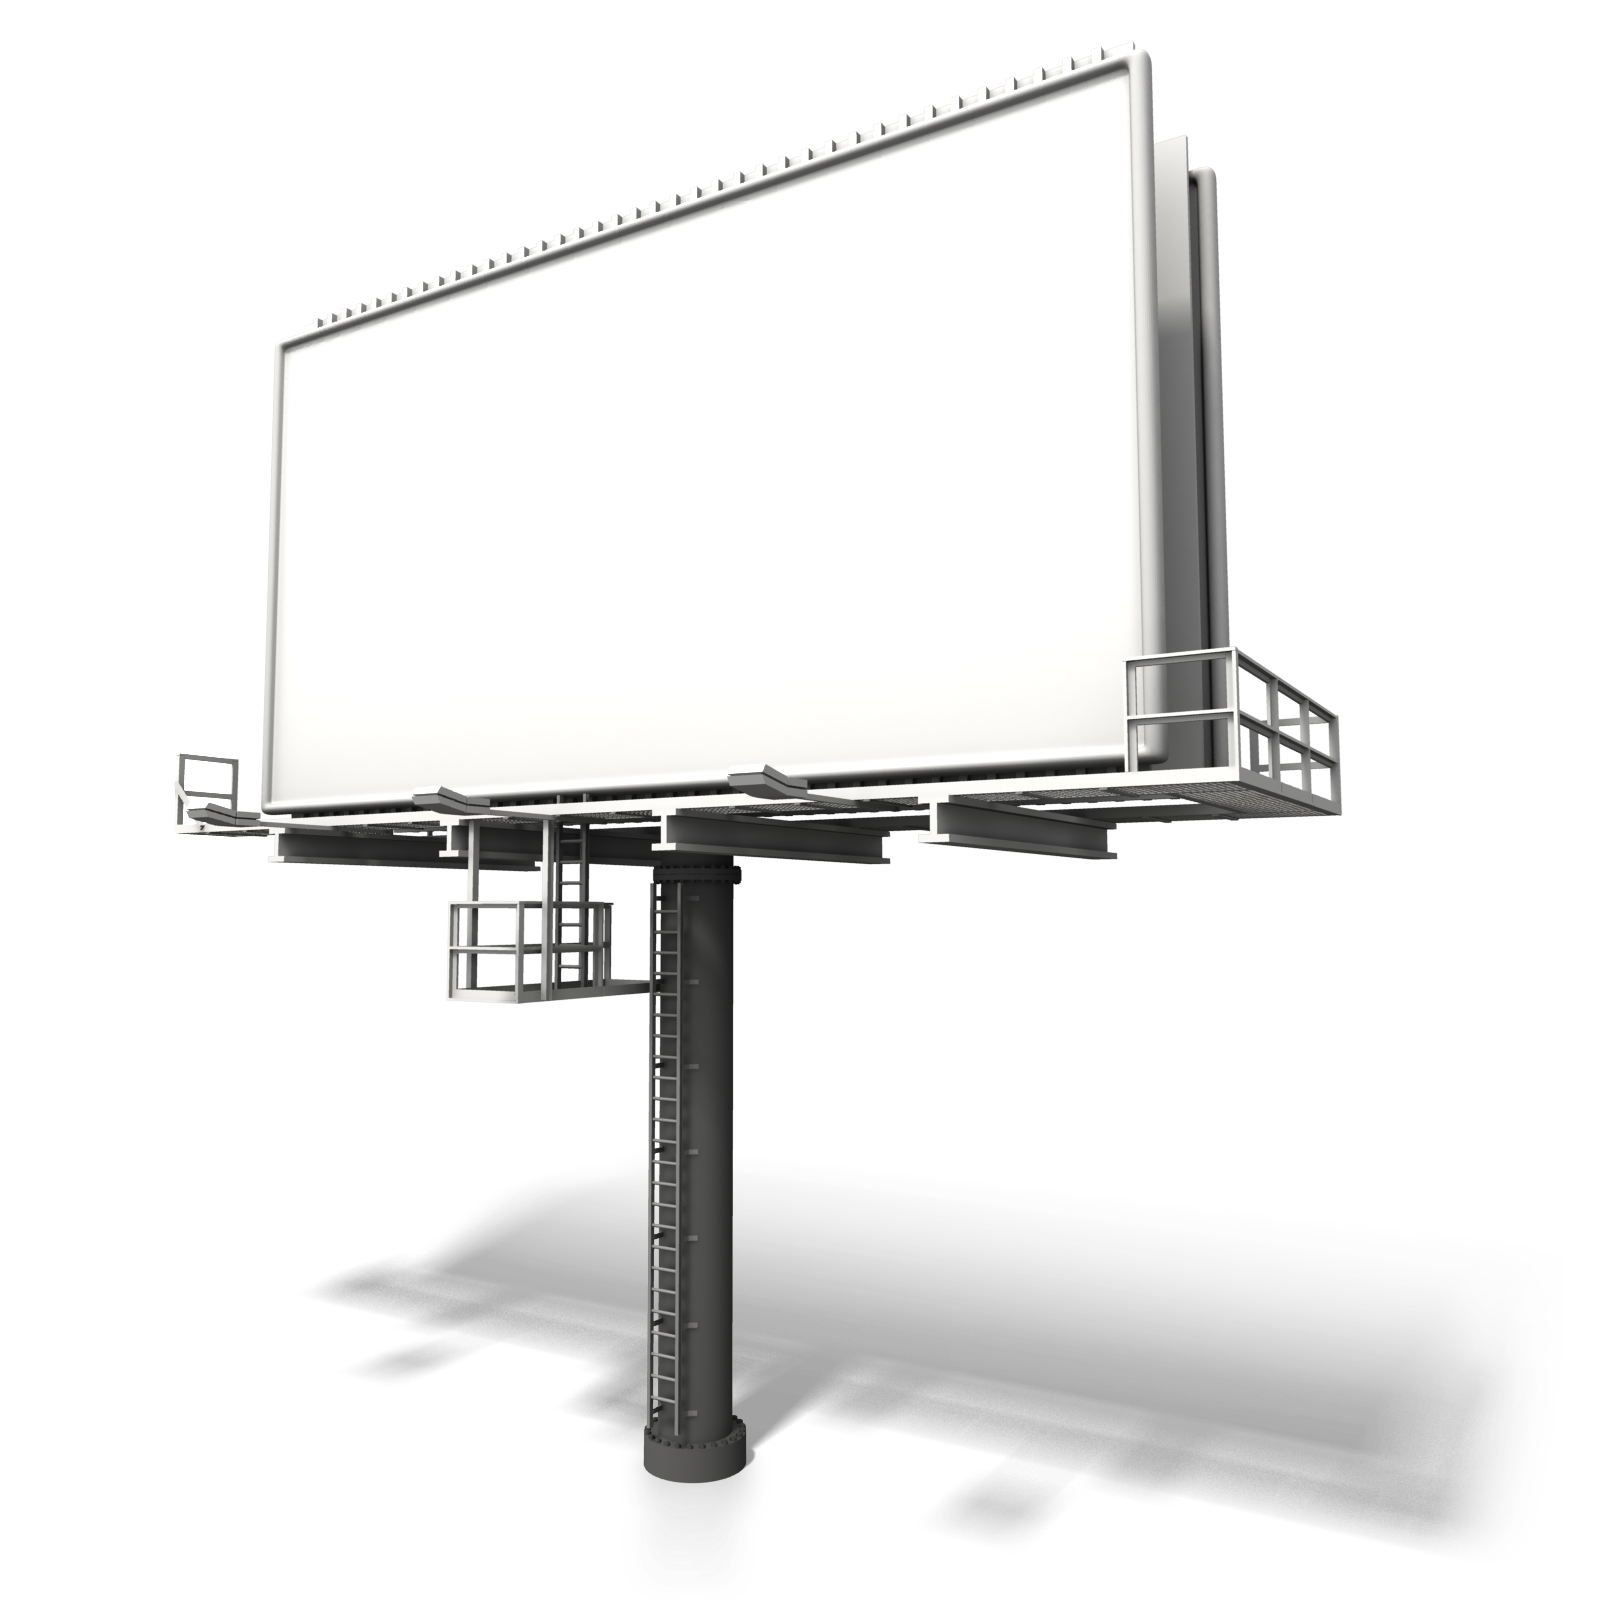 Billboard transparent png. Images free download pngmart